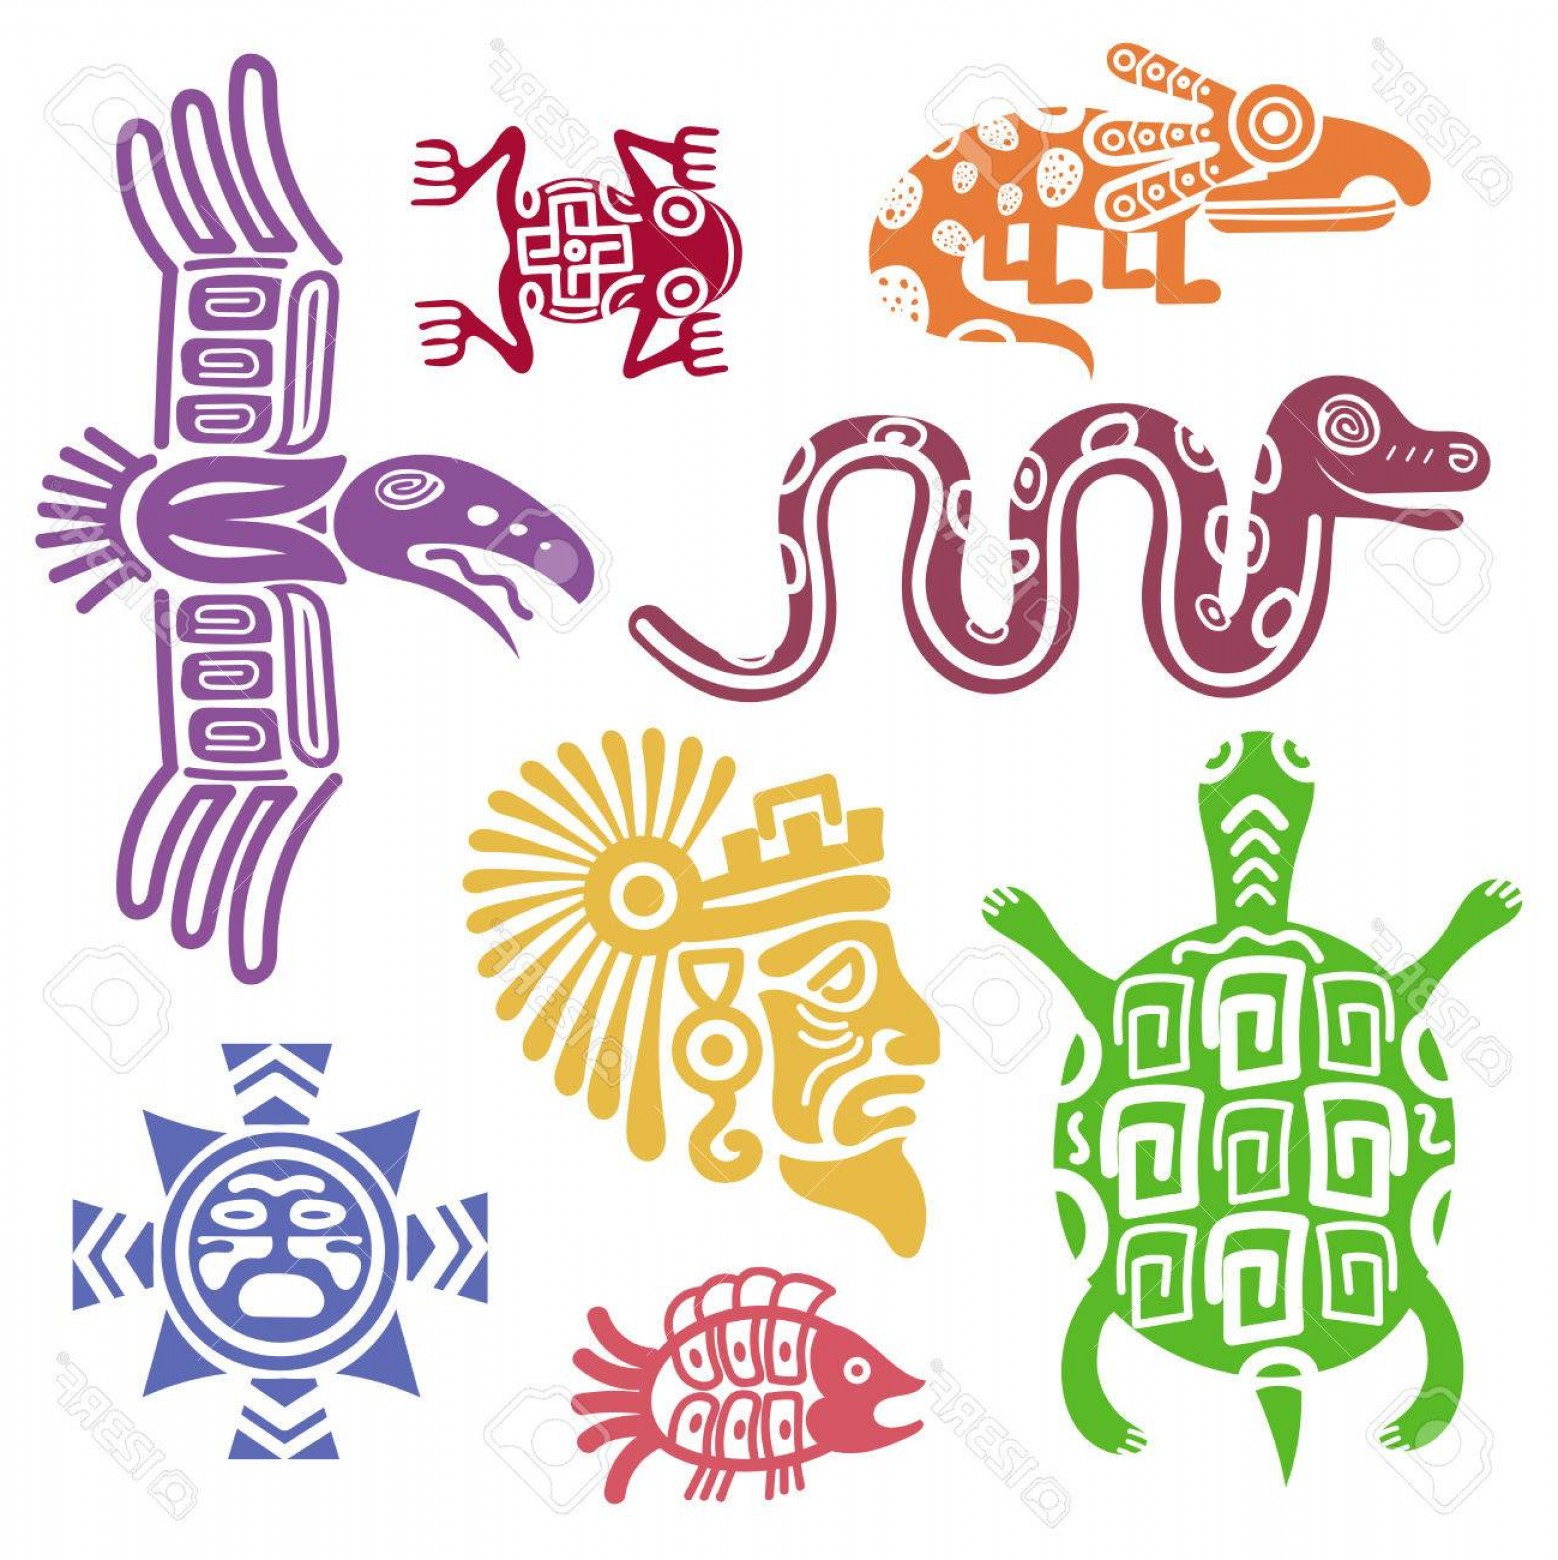 Mayan Vector: Photostock Vector Ancient Mexican Symbols Vector Illustration Mayan Culture Indian Symbols With Totem Patterns Animal